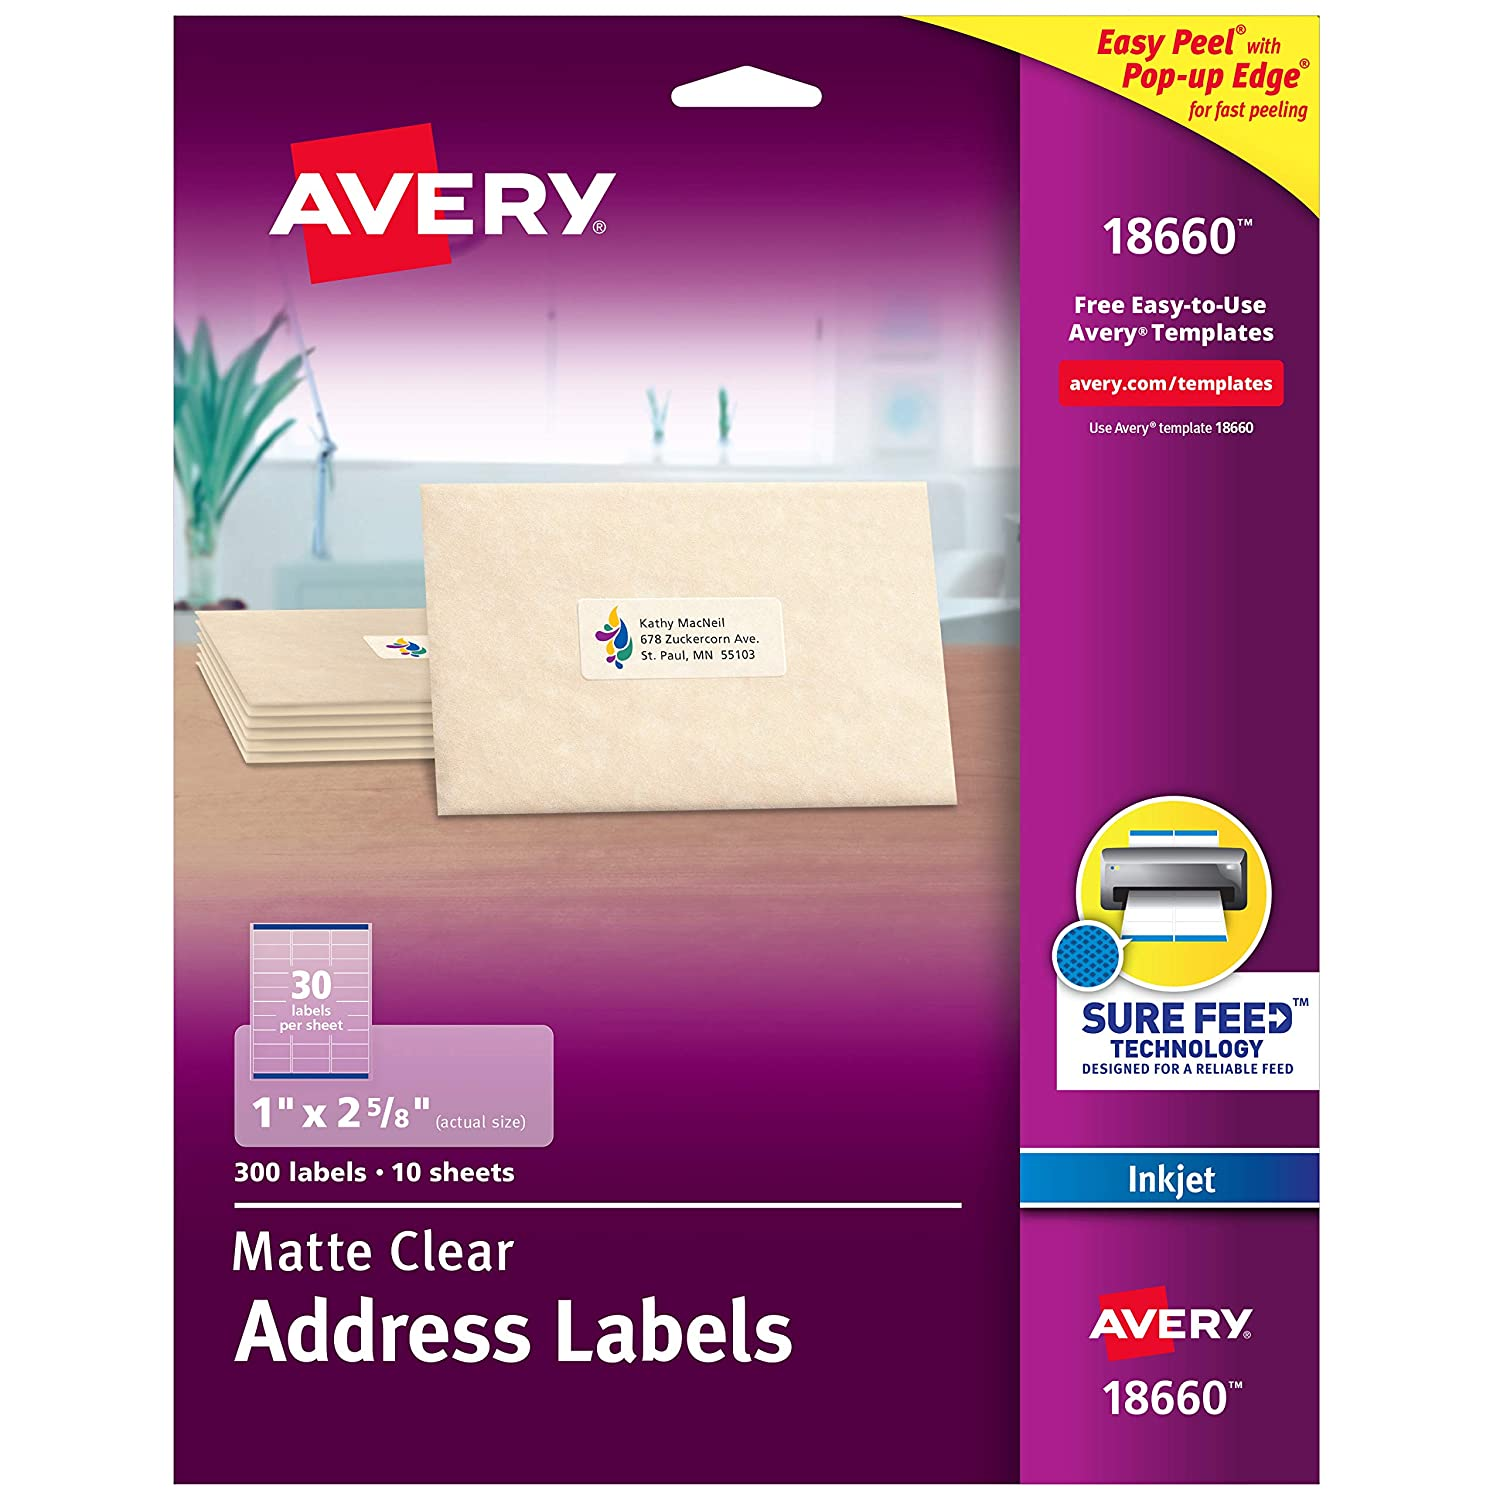 "B00004Z5T0 Avery Matte Frosted Clear Address Labels for Inkjet Printers, 1"" x 2-5/8"", 300 Labels (18660) 81Ay3Qz2BdBL"